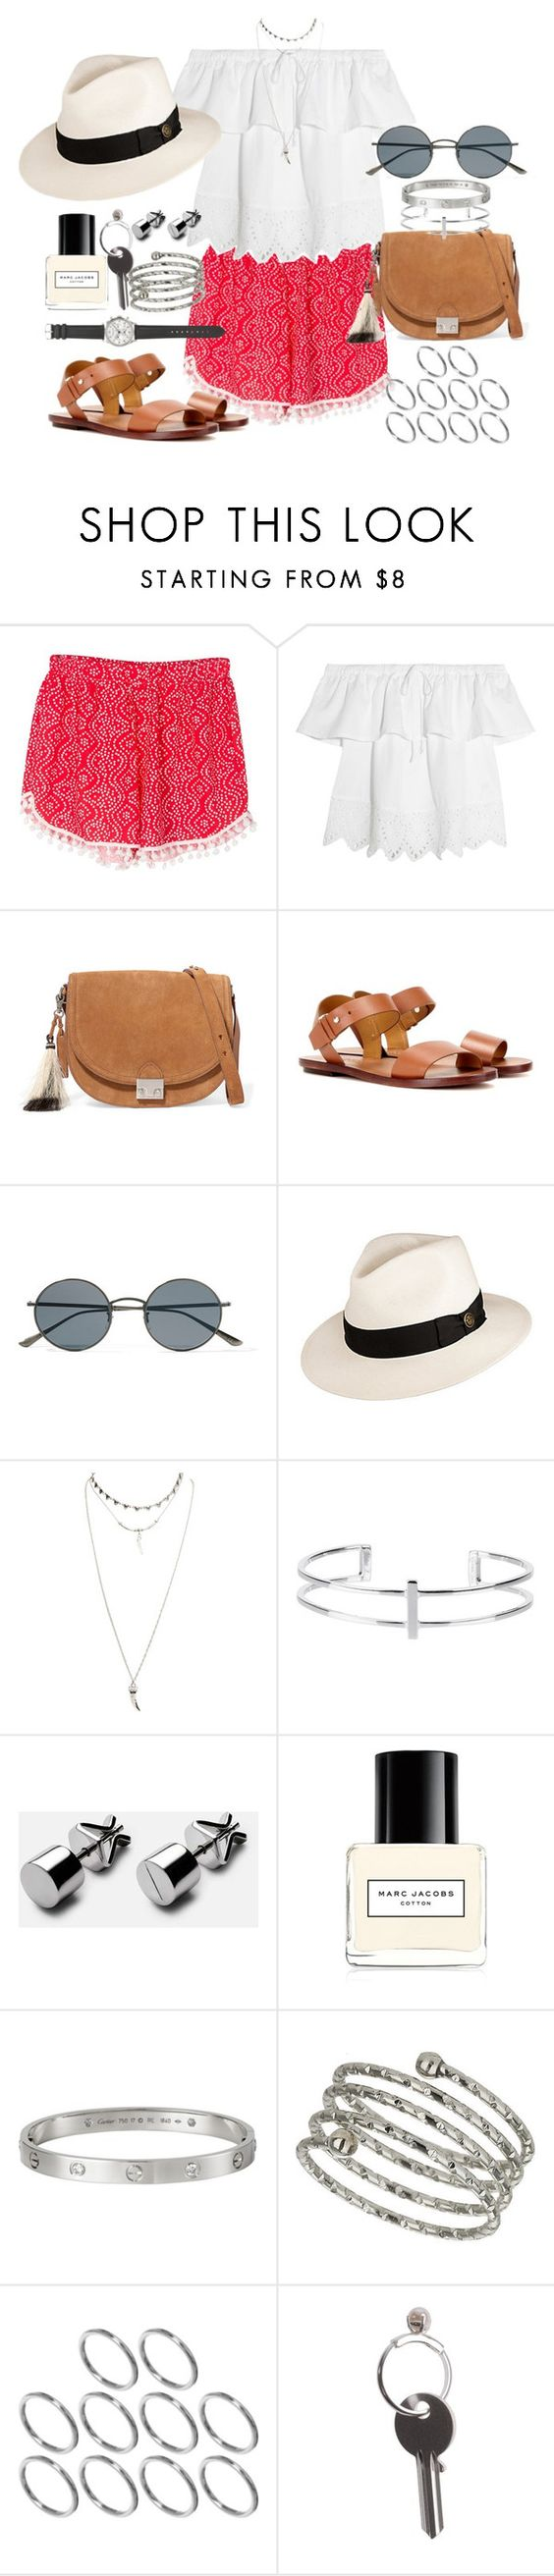 """""""Make it work"""" by marissa-91 ❤ liked on Polyvore featuring Madewell, Loeffler Randall, Polo Ralph Lauren, Oliver Peoples, Goorin, Wet Seal, Marc Jacobs, Cartier, Topshop and ASOS"""